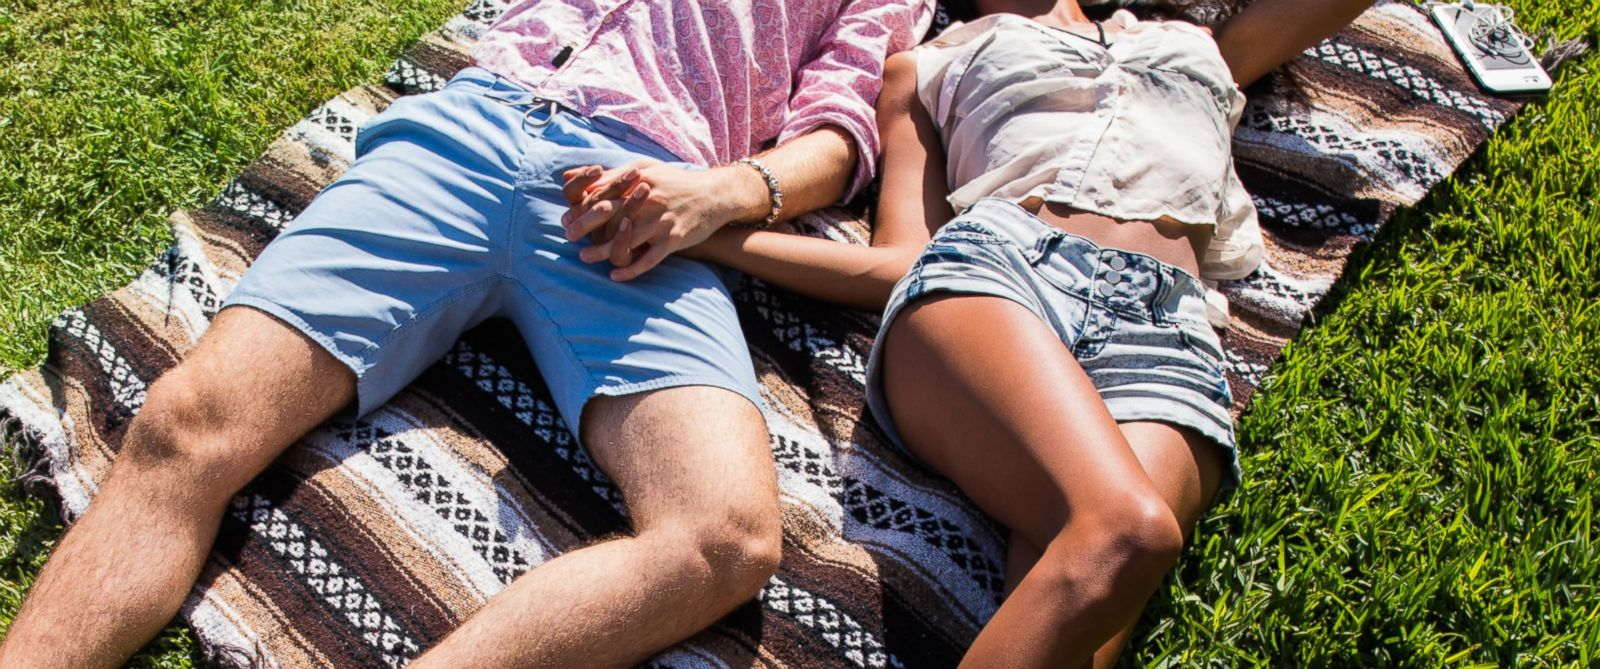 PHOTO: A new report from Harvard Universitys Graduate School of Education suggests that millennials are more interested in dating seriously or hanging out with friends than having casual sex.